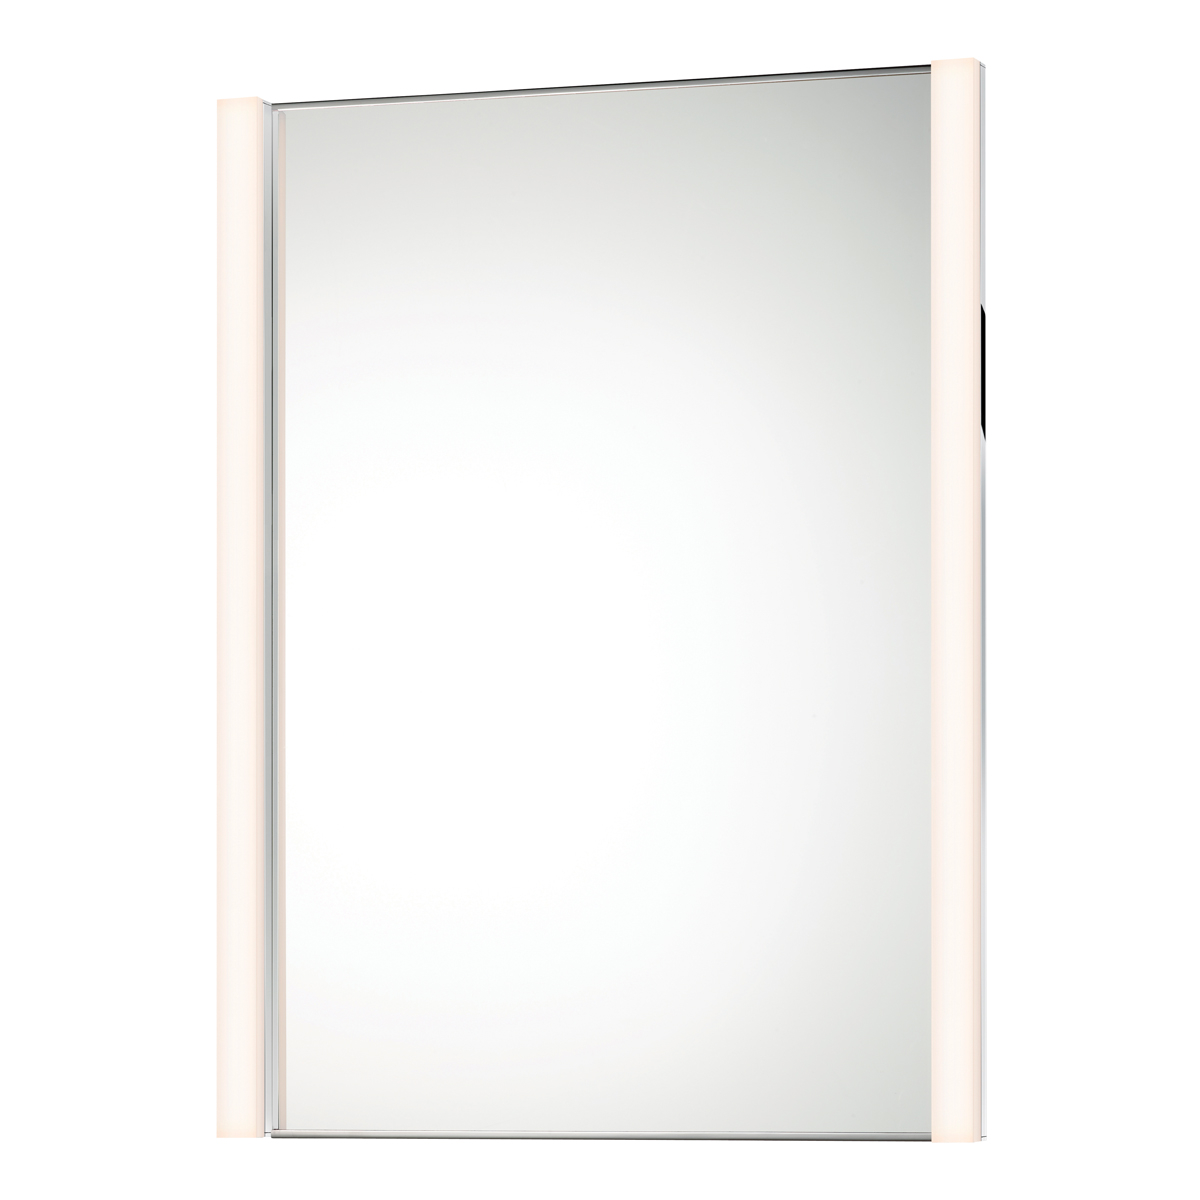 Vanity : LED Mirror Kit | Yale Appliance and Lighting